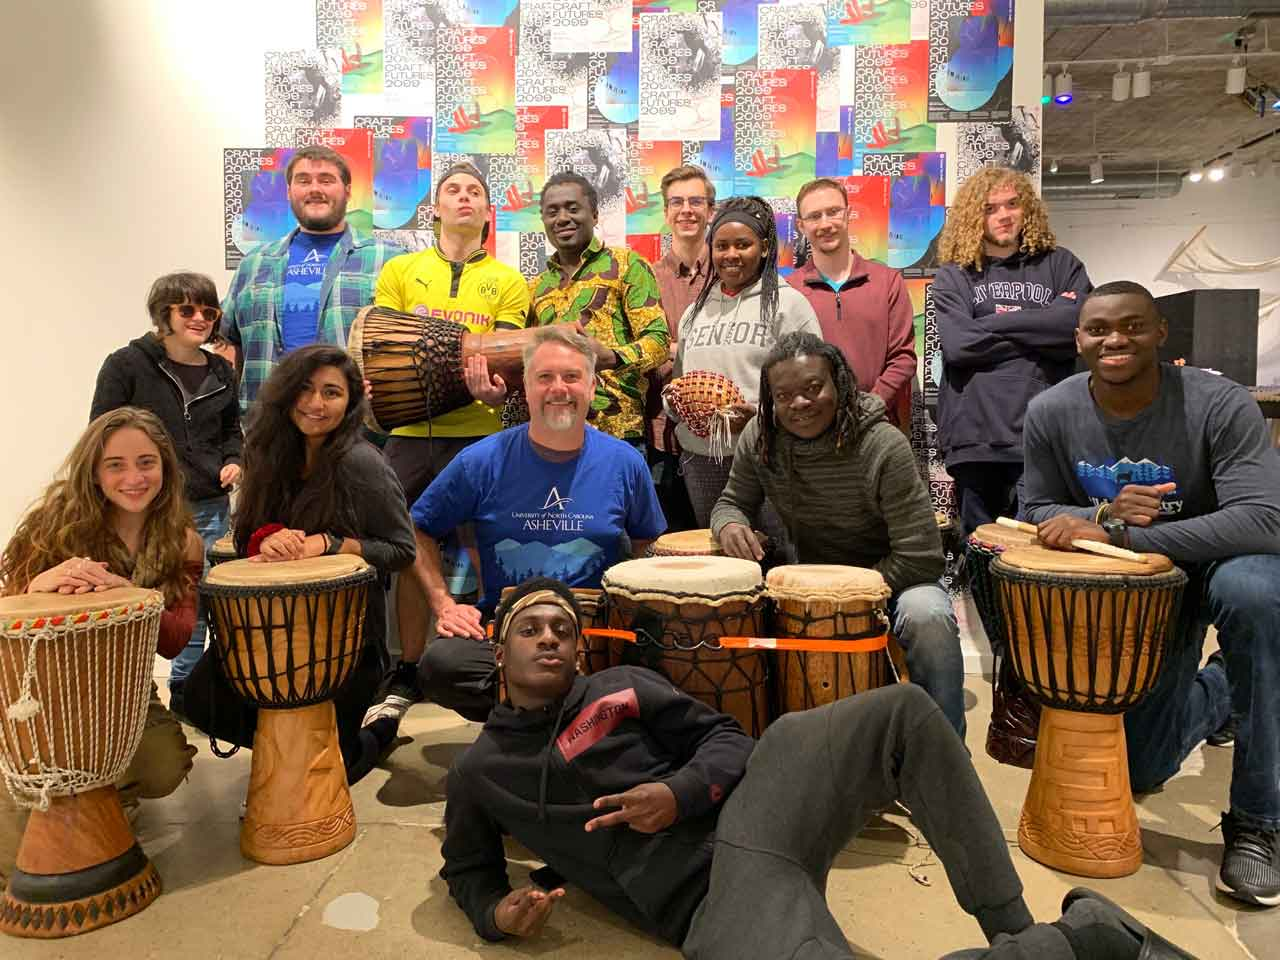 Fourteen people gathered together and smiling and posing with African drums.